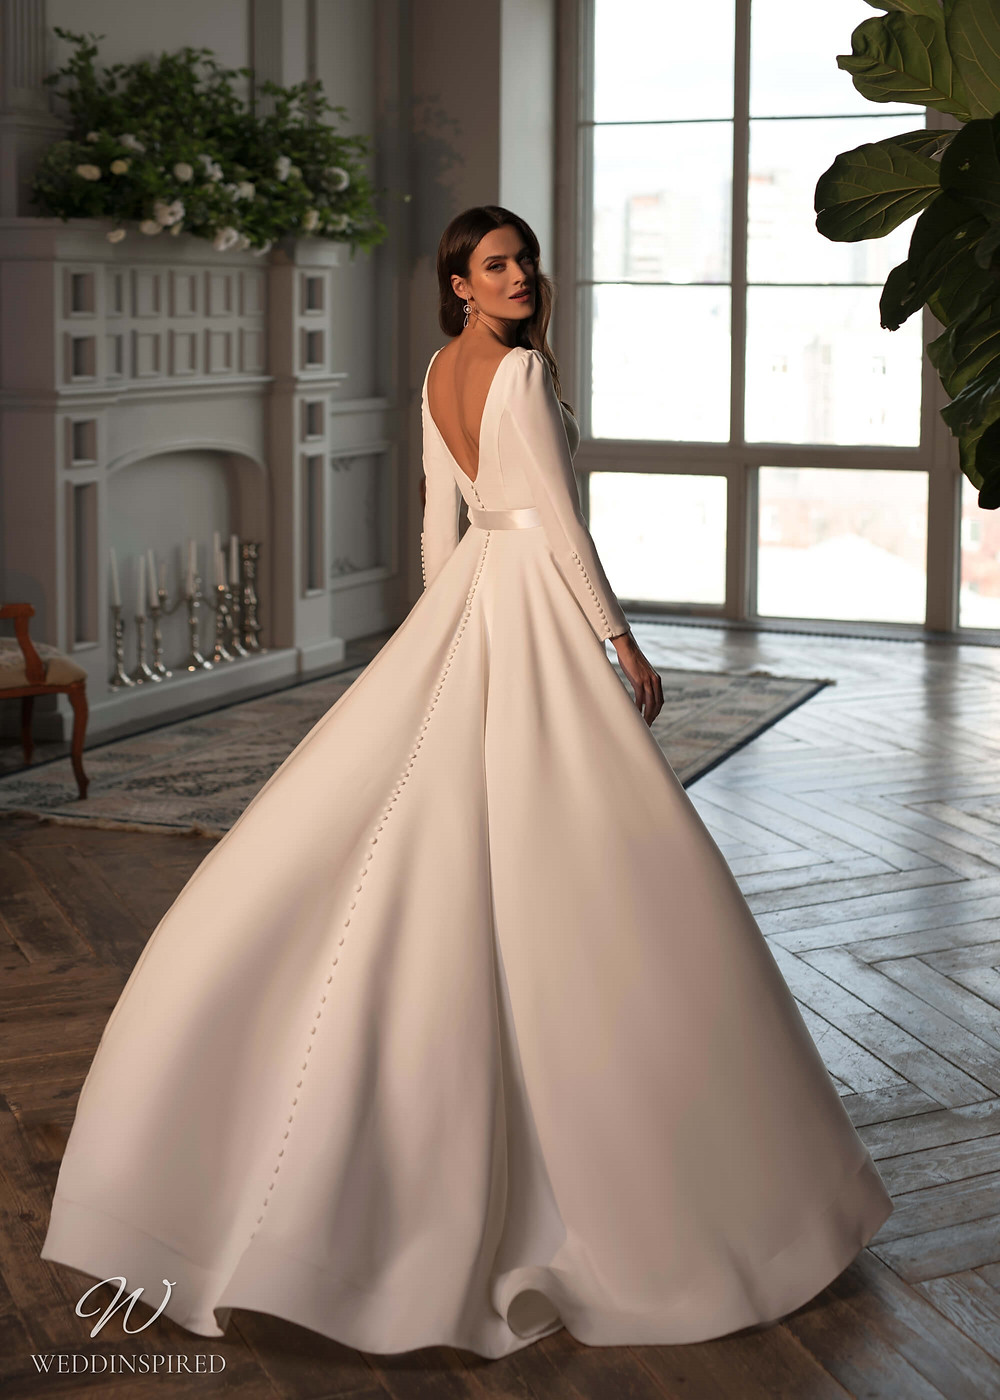 A Naviblue Bridal 2021 crepe simple ball gown wedding dress with long sleeves, a low back and buttons